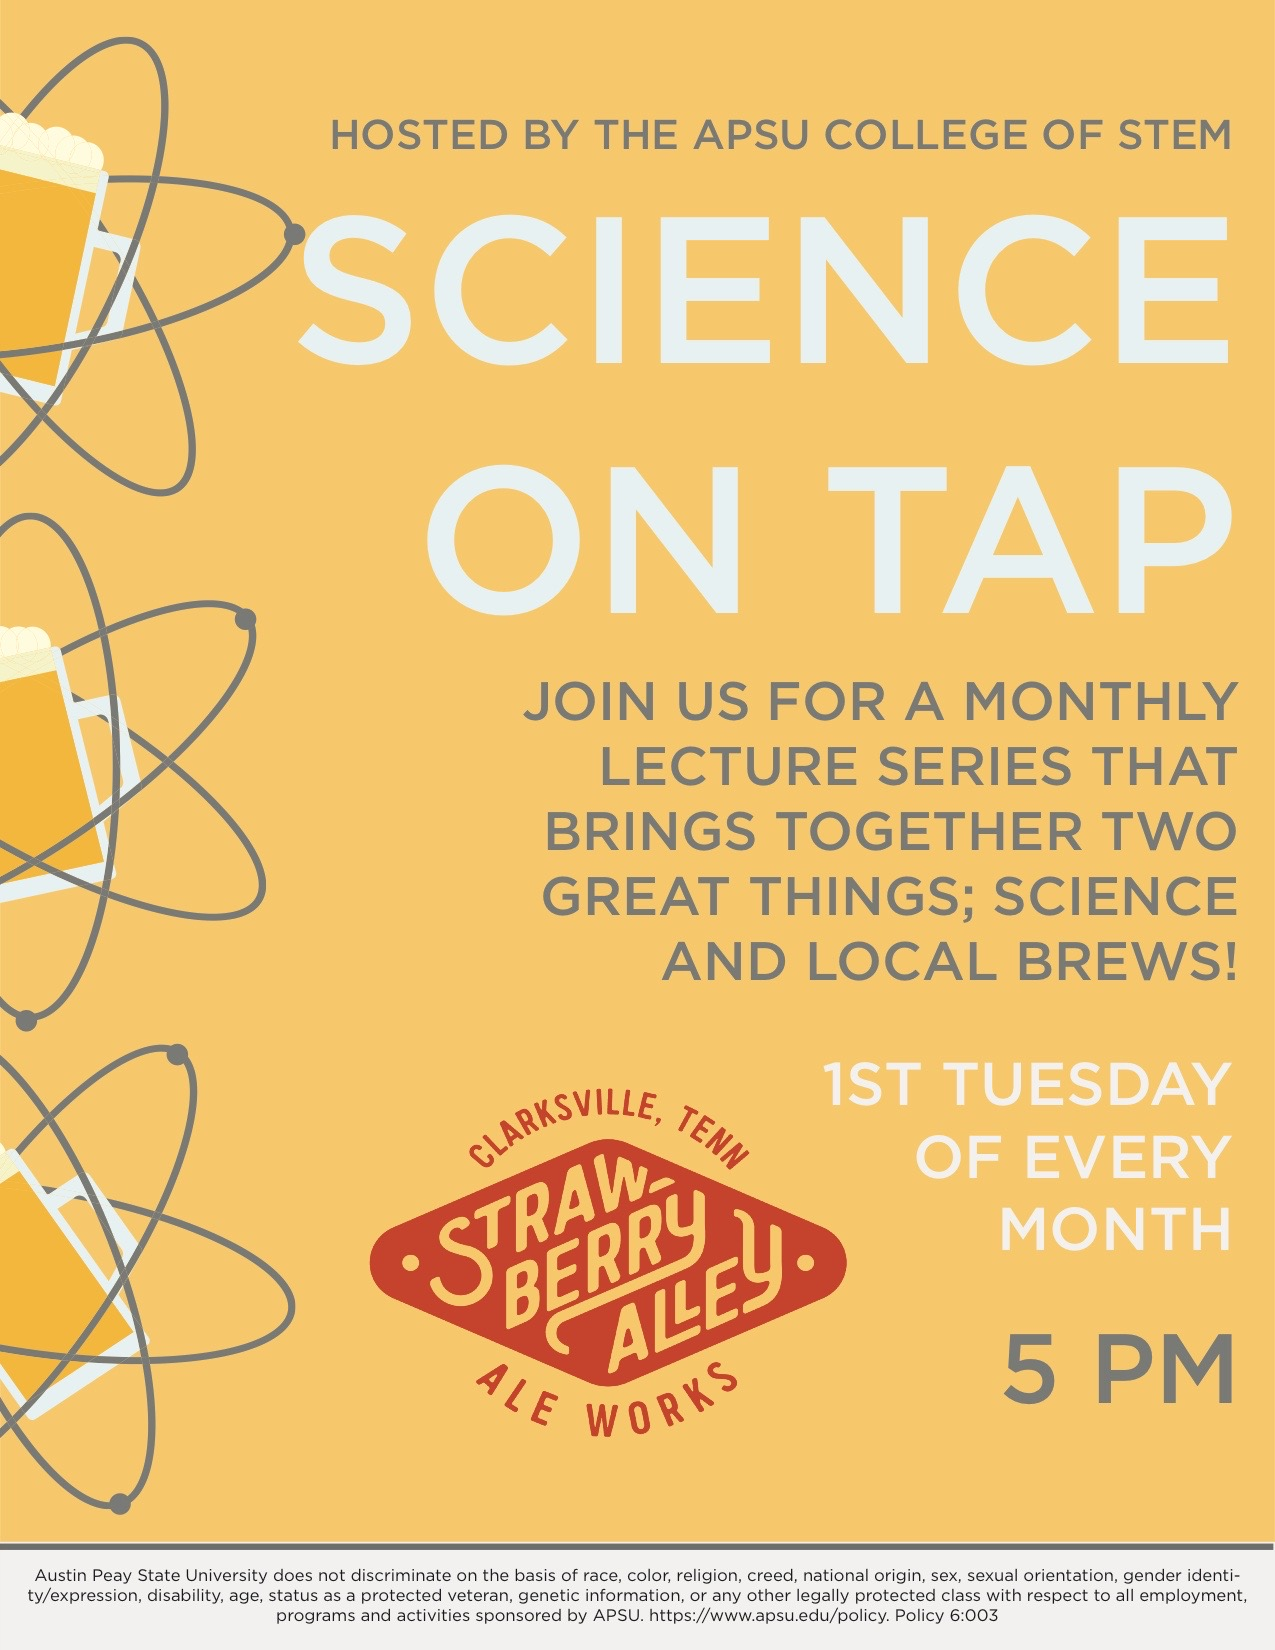 "Dr. J. Allyn Smith – an astrophysicist who teaches in the Department of Physics, Engineering and Astronomy – will discuss black holes at 5 p.m. Tuesday, Sept. 3, at Austin Peay's first ""Science on Tap,"" a monthly lecture series that unites two great things: science and local brews."